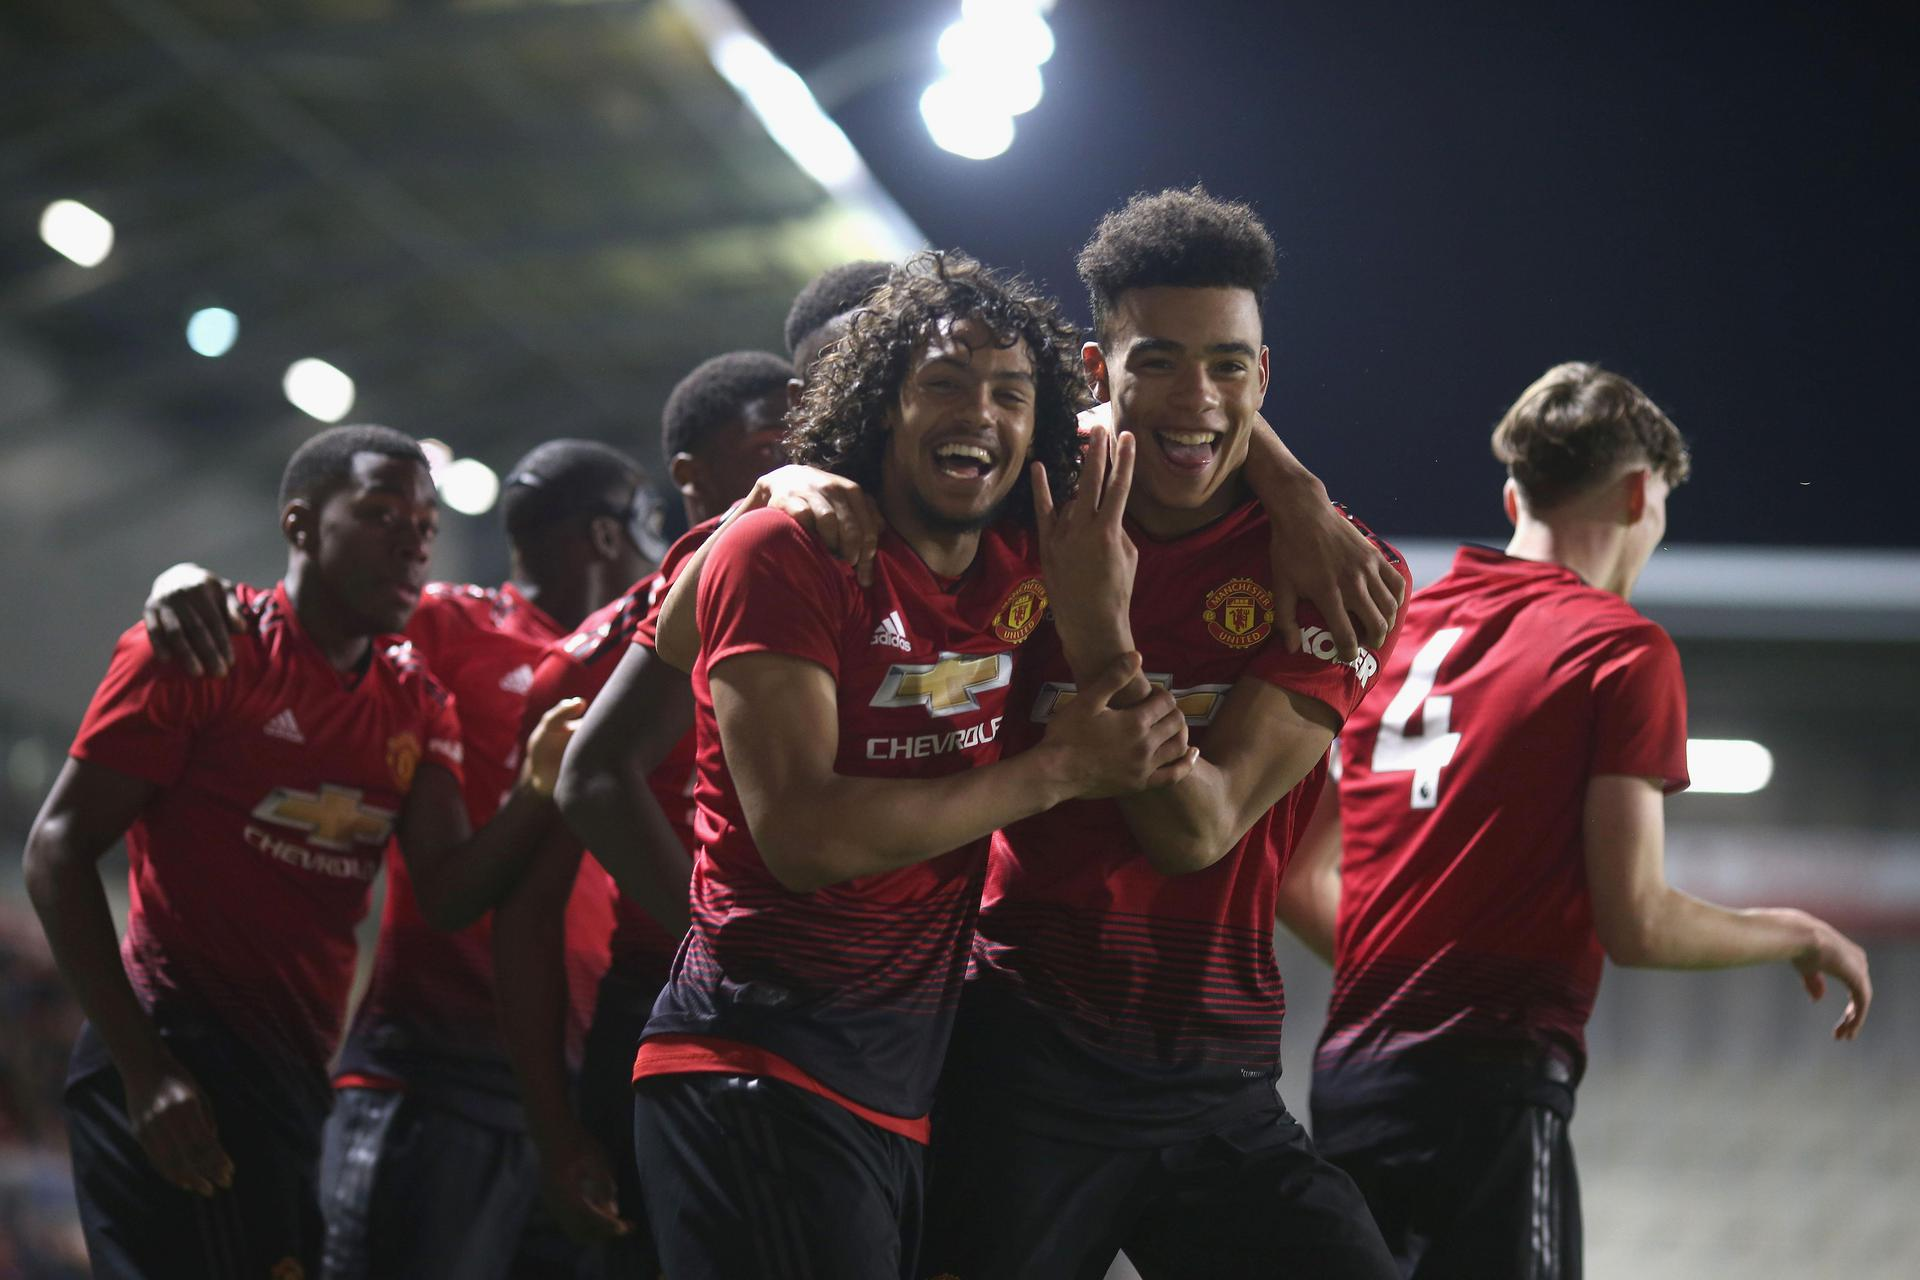 Celebrations for D'Mani Mellor and Mason Greenwood.